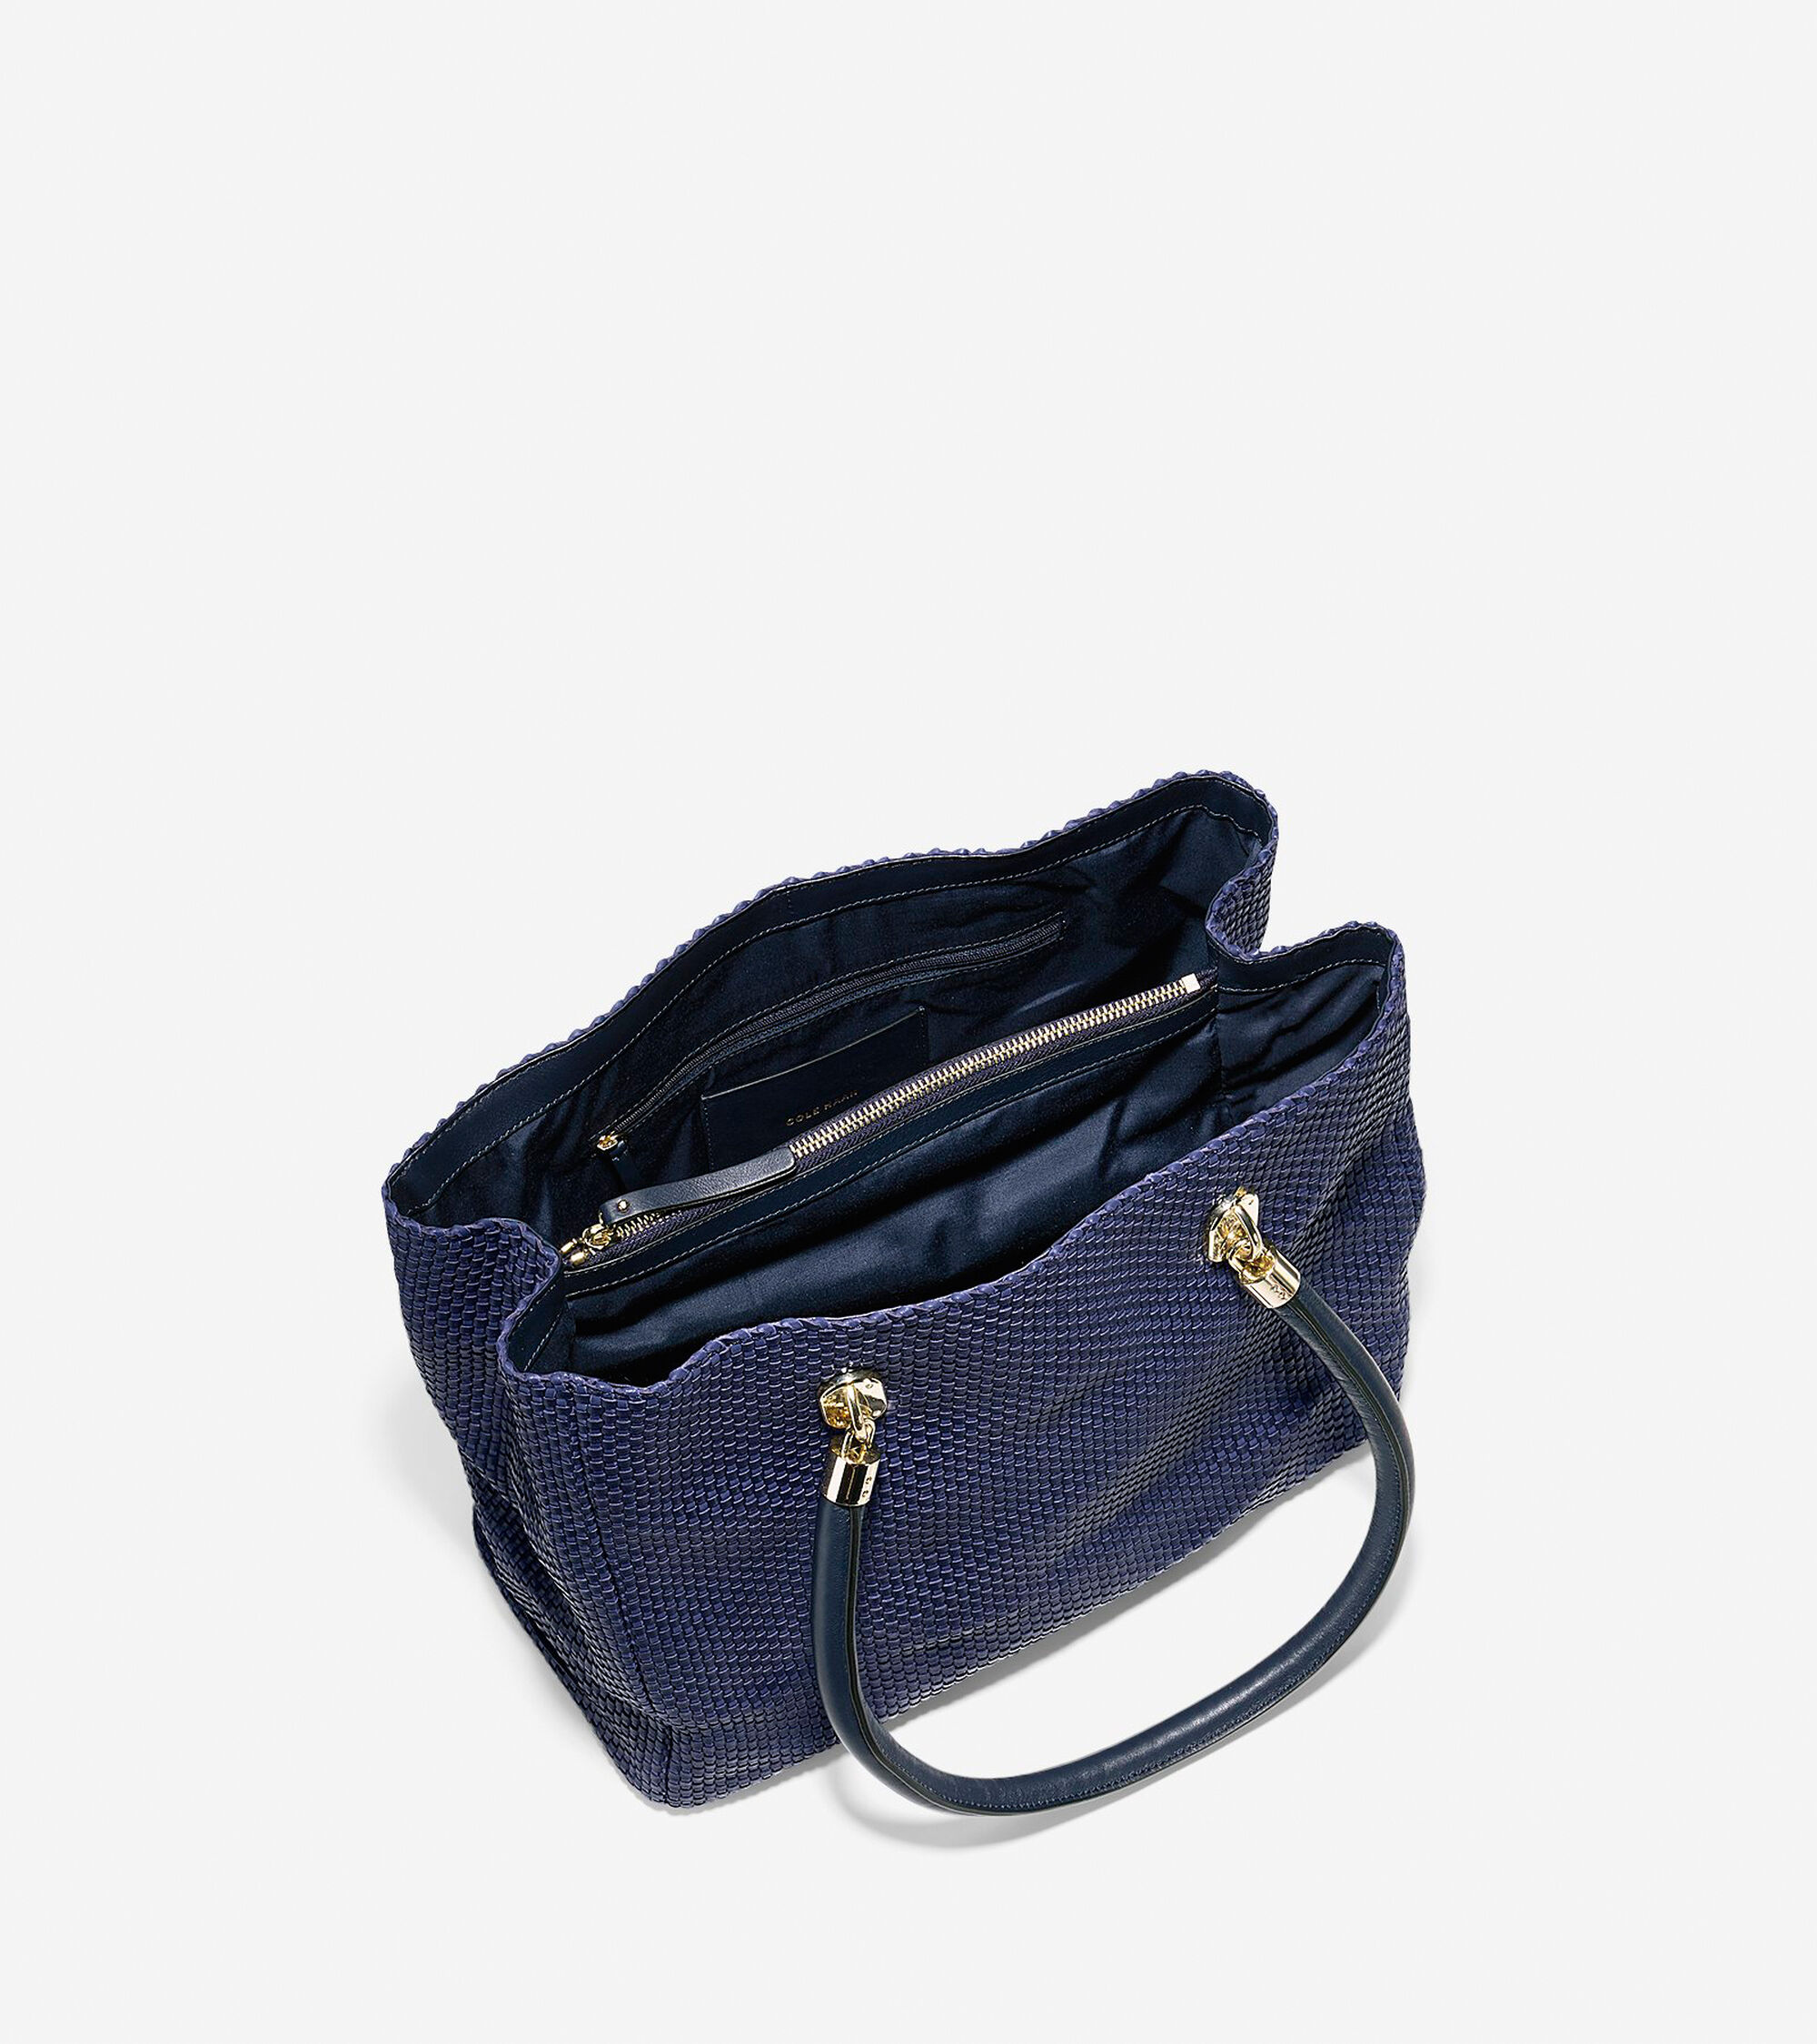 Bags Outerwear Ilianna Backpack New Arrivals Cole Haan Hattie Leather Shoulder Bag 0094 Reliable Supplier Outlet On Attractive Jitney Straw Serena